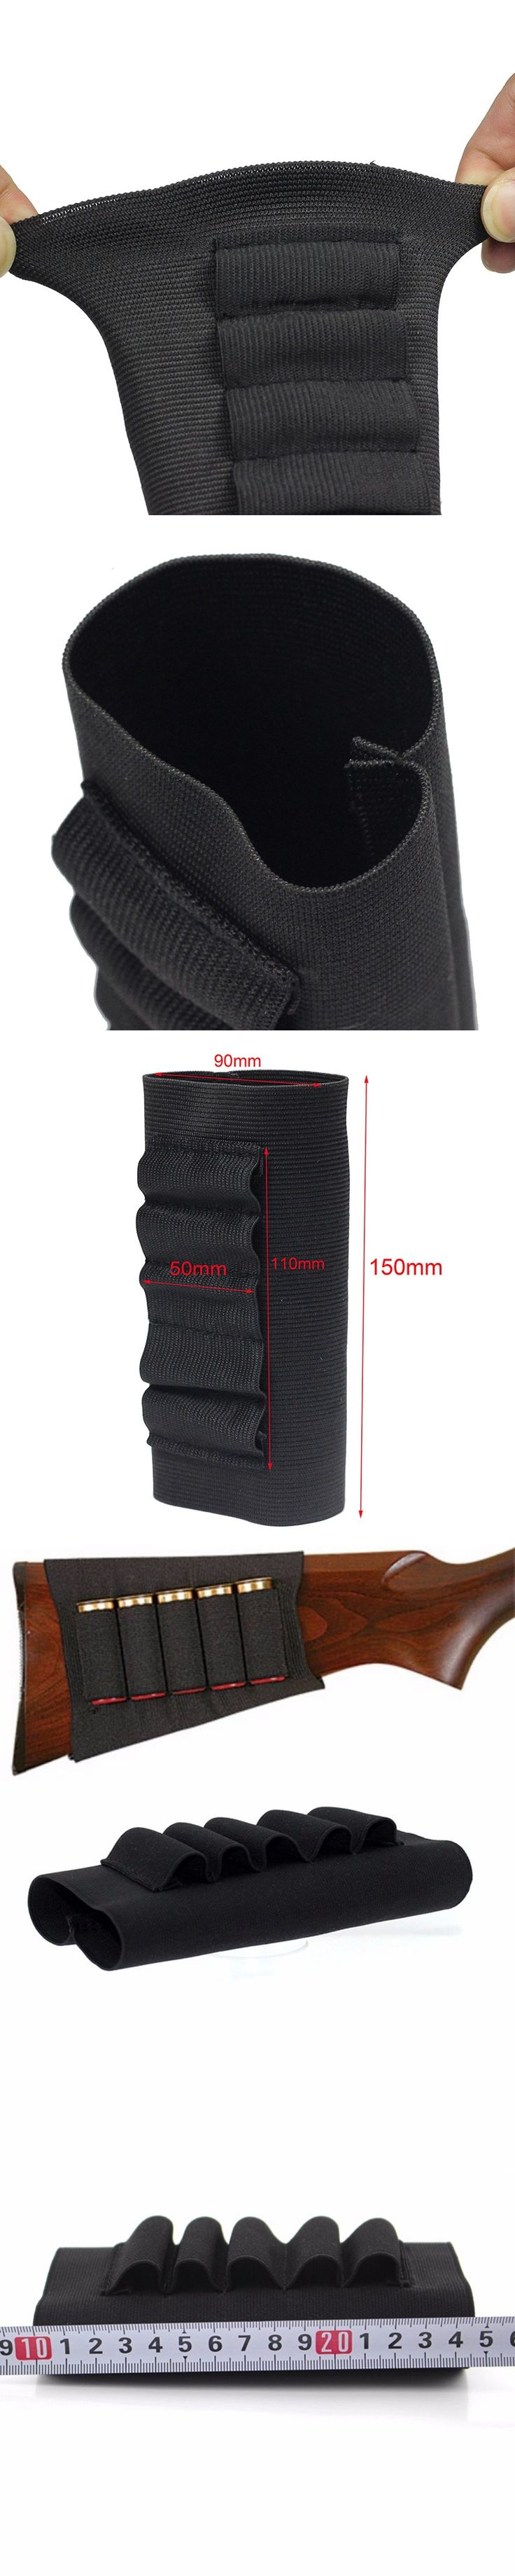 Hunting Accessories 15CM Airsoft Rifle  Tactical Pouches 5 Butt Cartridges Stock Shell Holder Elastic Fabric Carrier P15